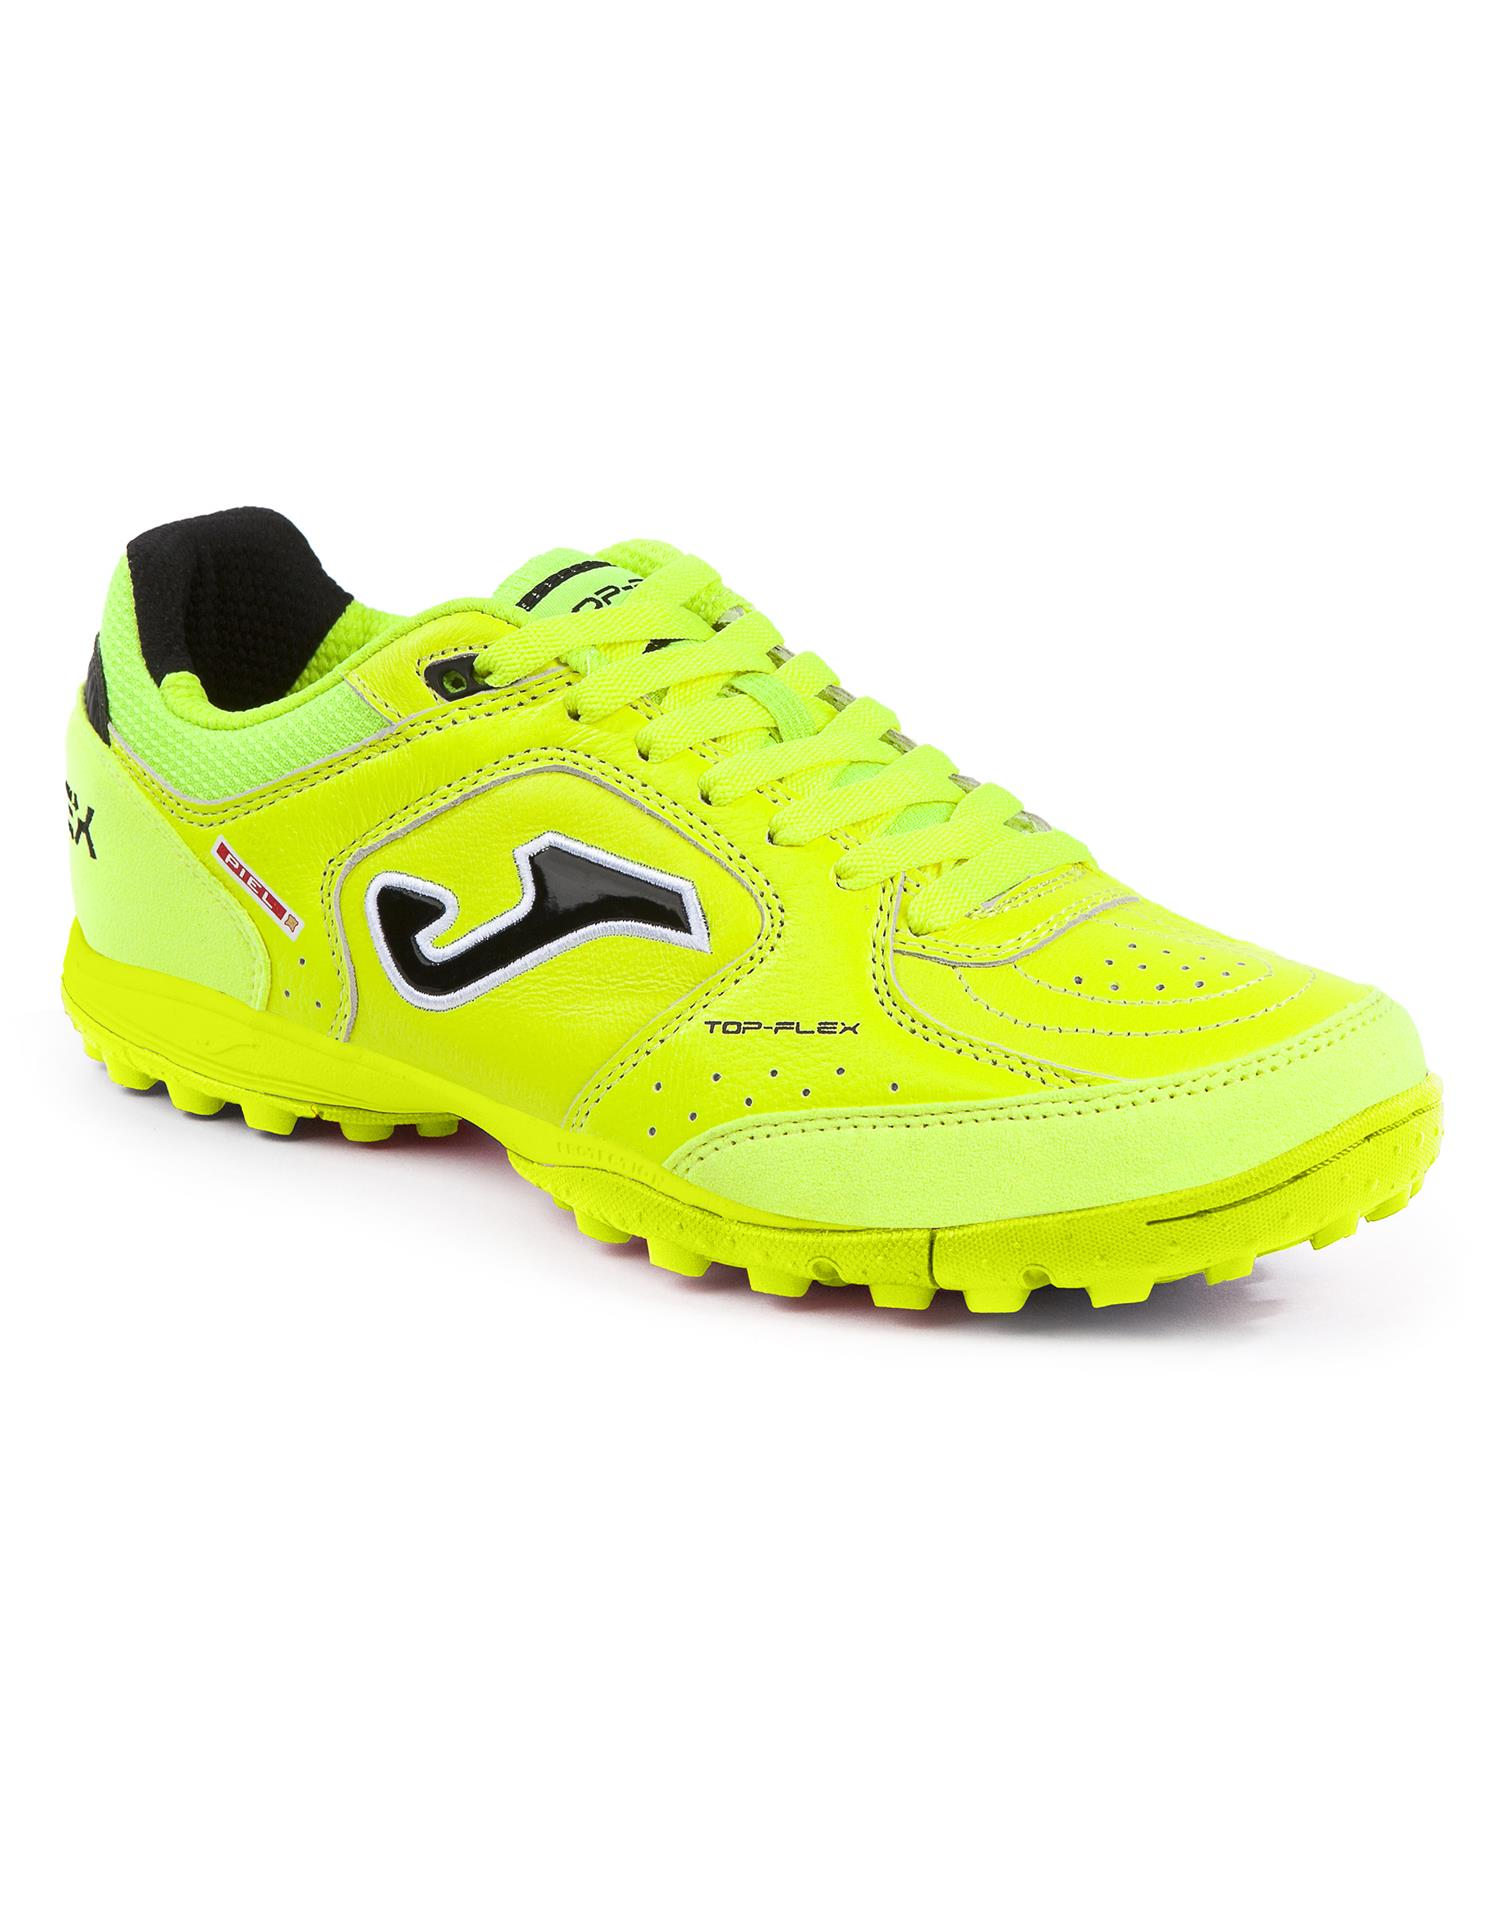 JOMA Scarpa calcio a 5 Top Flex Turf (44 - GIALLO FLUO)